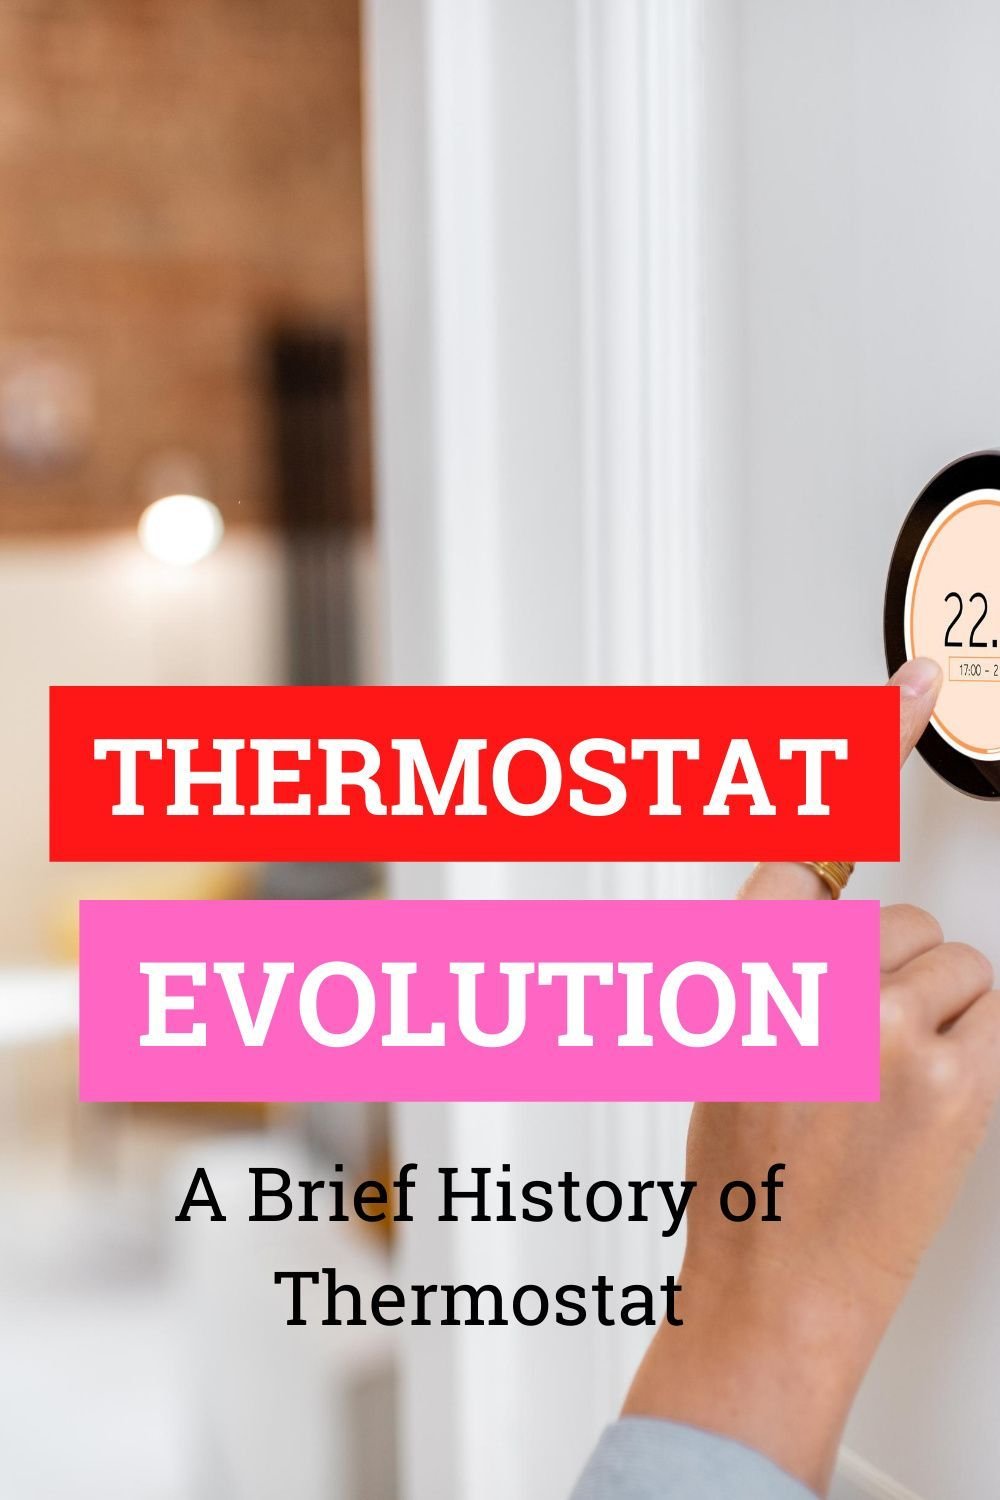 Thermostat Evolution A Brief History of Thermostat in